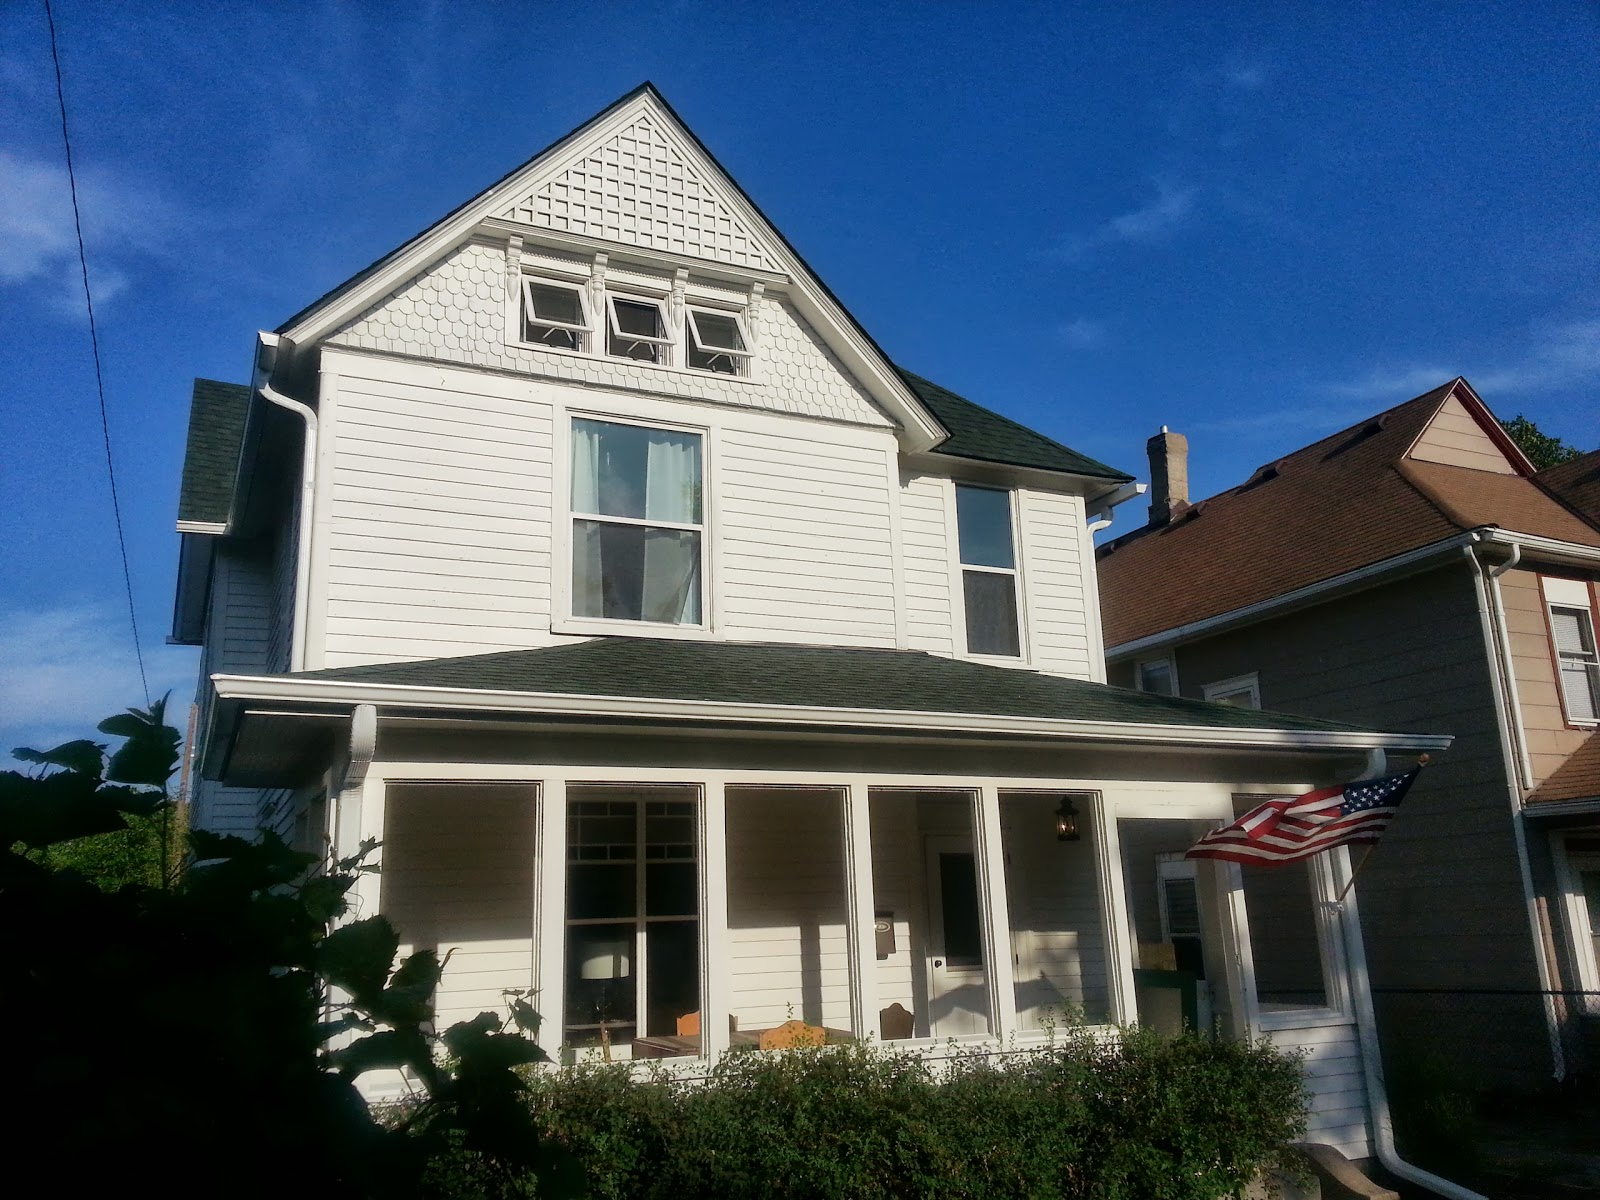 House Addic northnorthside: how the 4th street house was saved